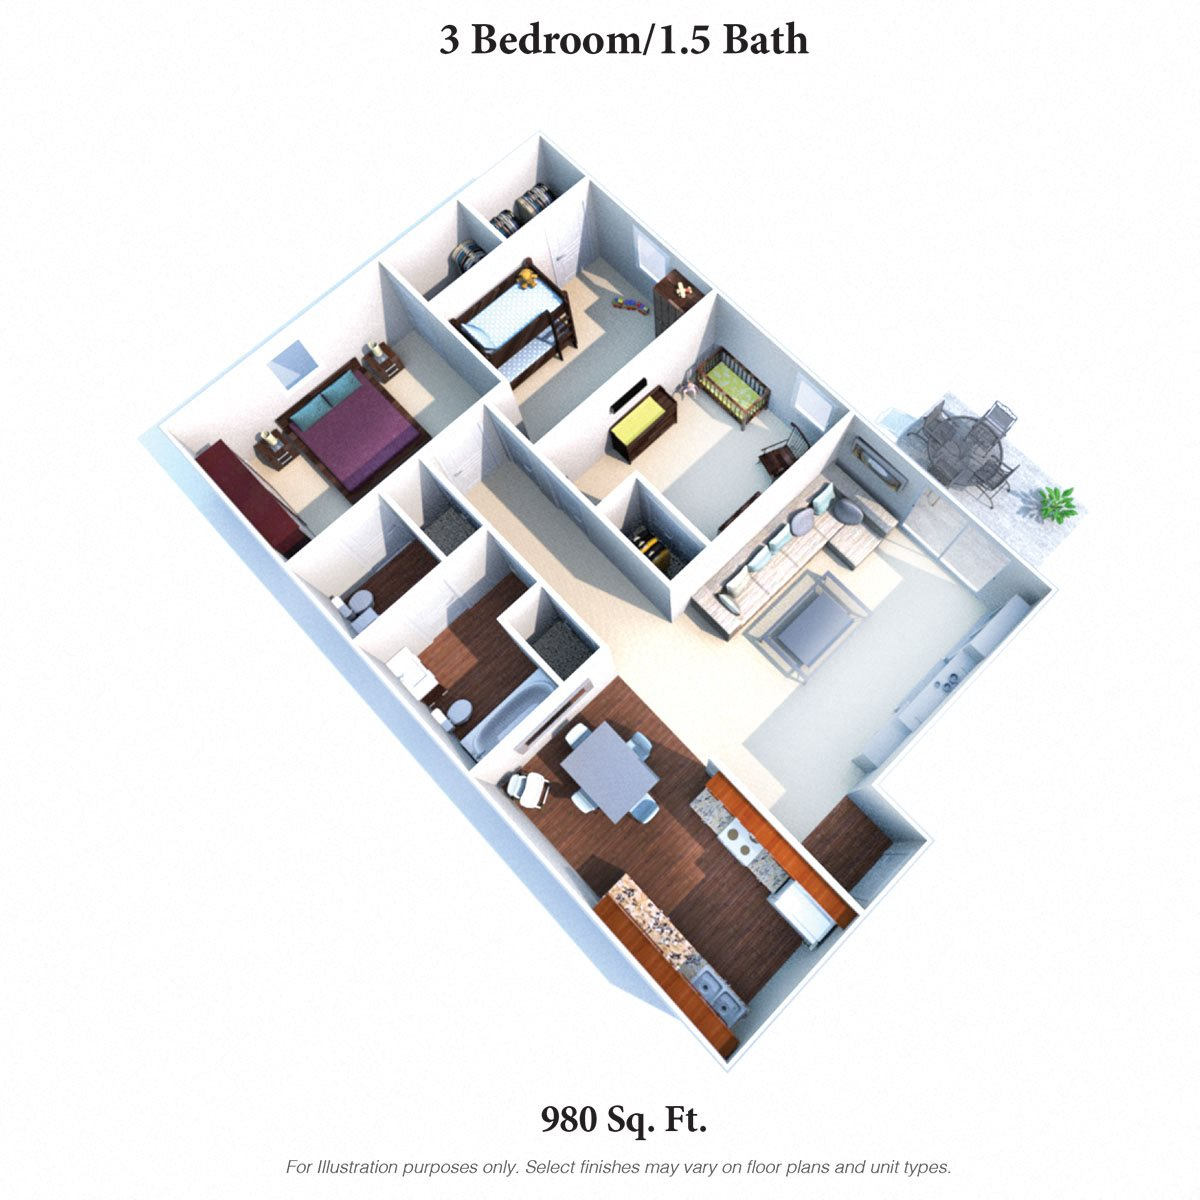 3 Bedrooms 1.5 Baths Floor Plan 4